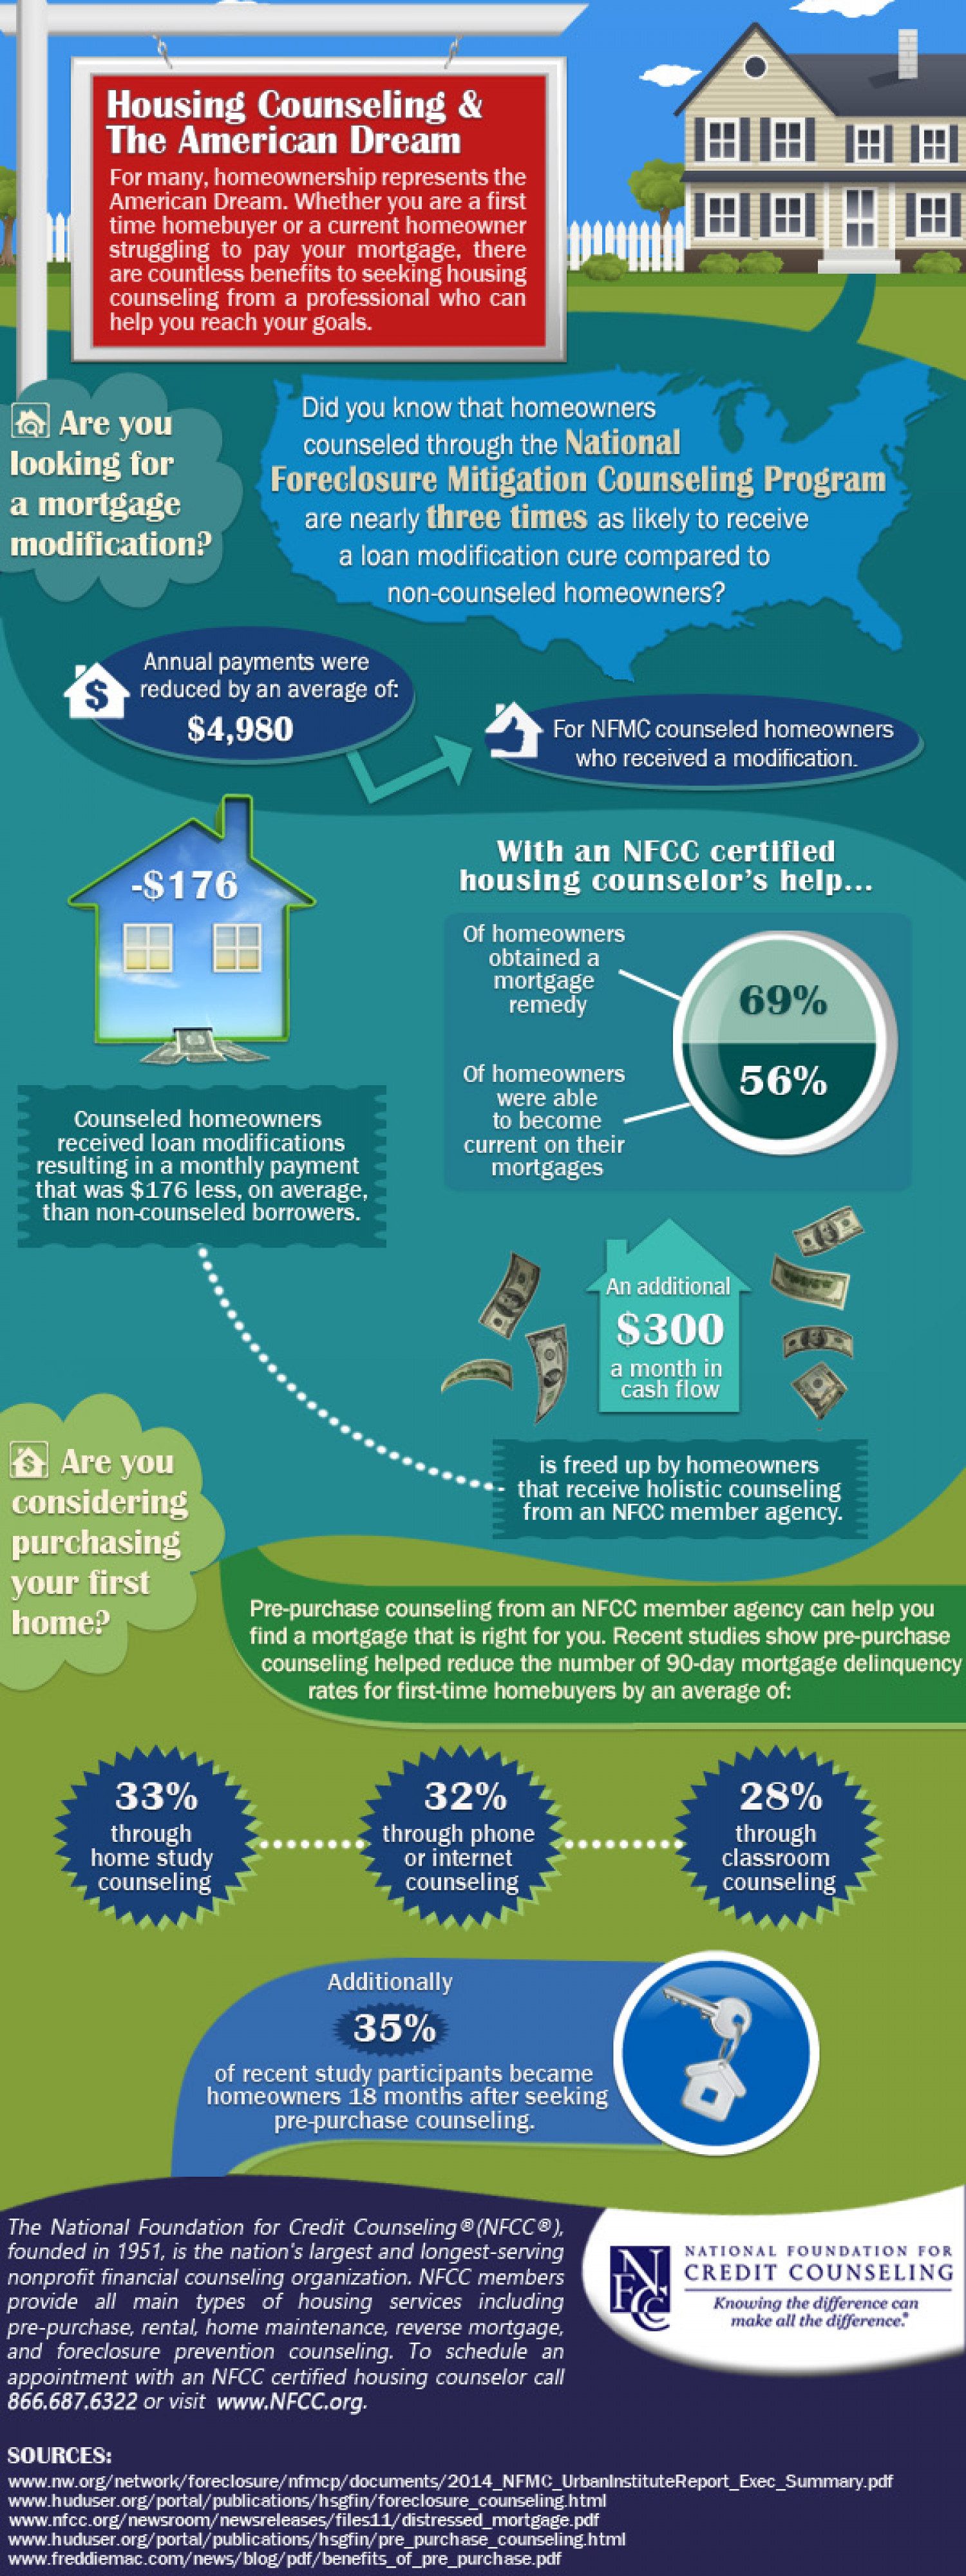 Housing Counseling Can Help You Turn the American Dream into a Reality Infographic